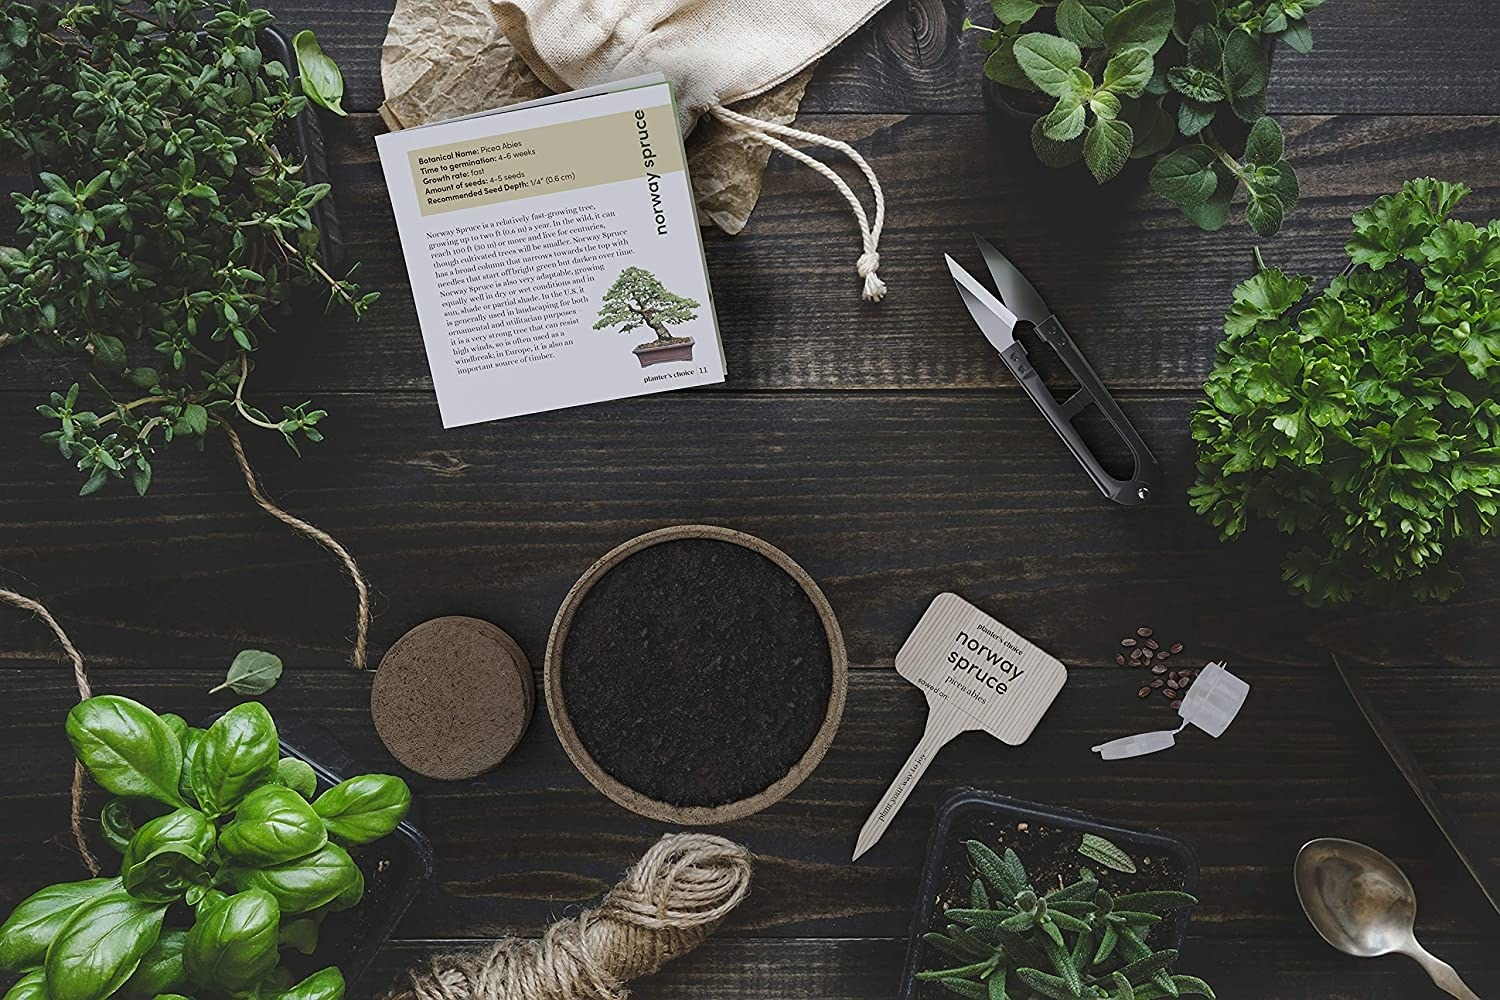 A flat lay image of the soil, nipping tools, twin, plants, and other products that come with the kit